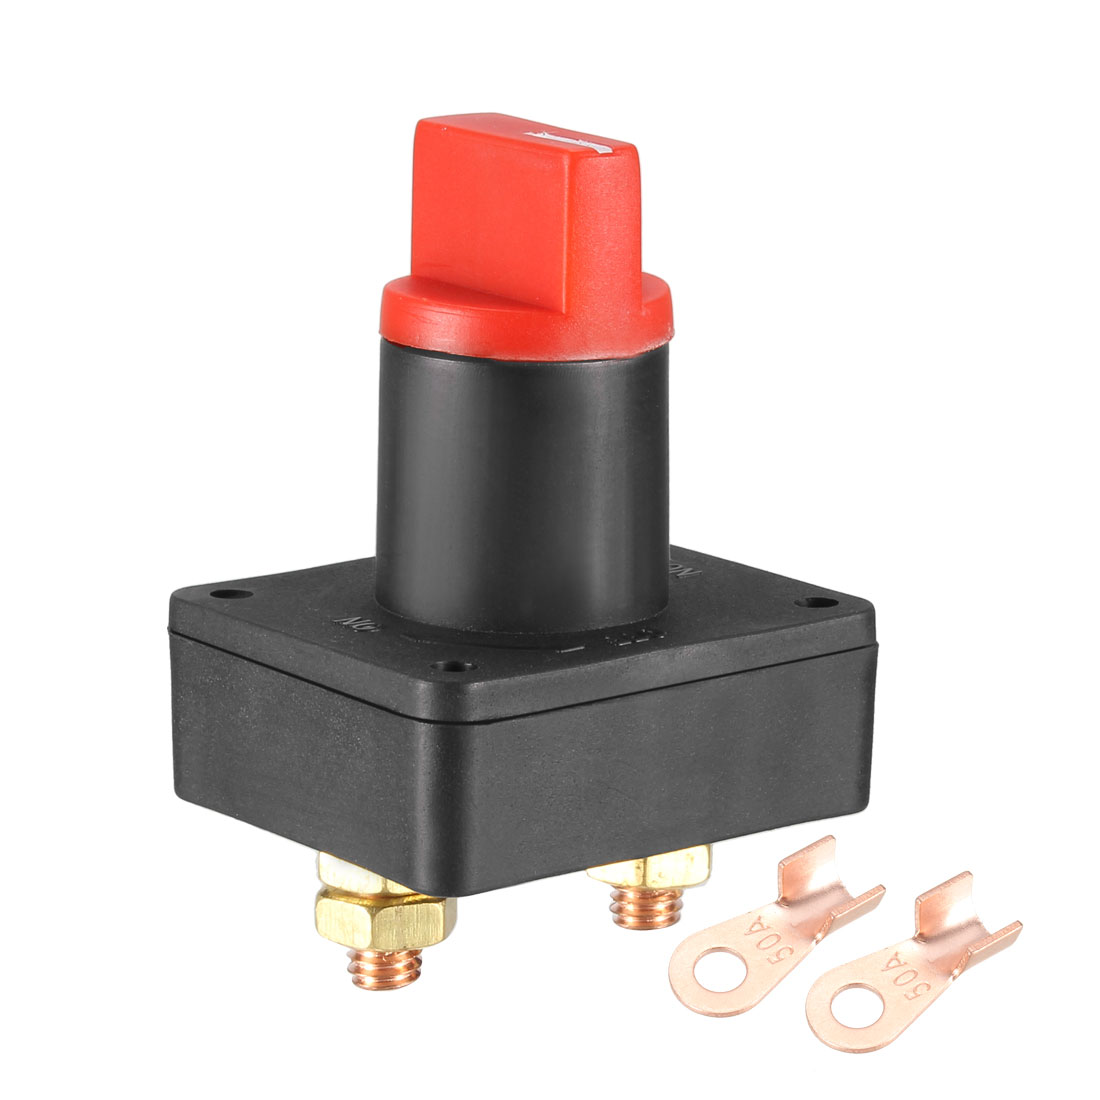 Battery Switch Disconnect 12-24V Battery Power Cut Master Switch Isolator On Off